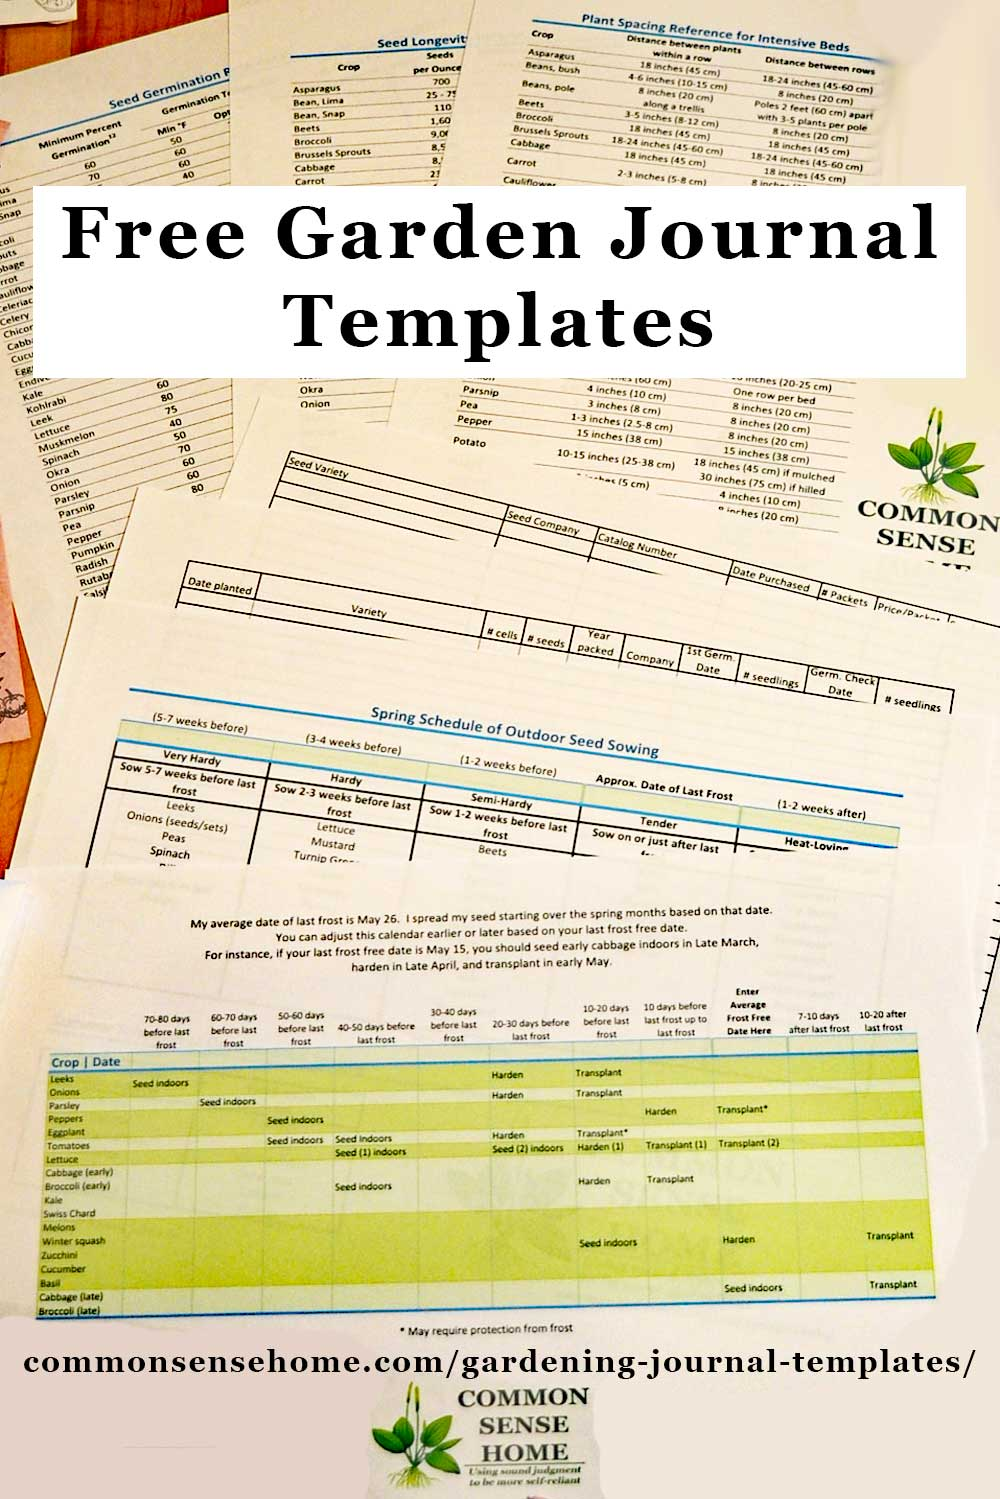 Free Gardening Journal Templates And Other Garden Record Keeping Tips In 2020 Garden Journal Template Garden Journal Journal Template